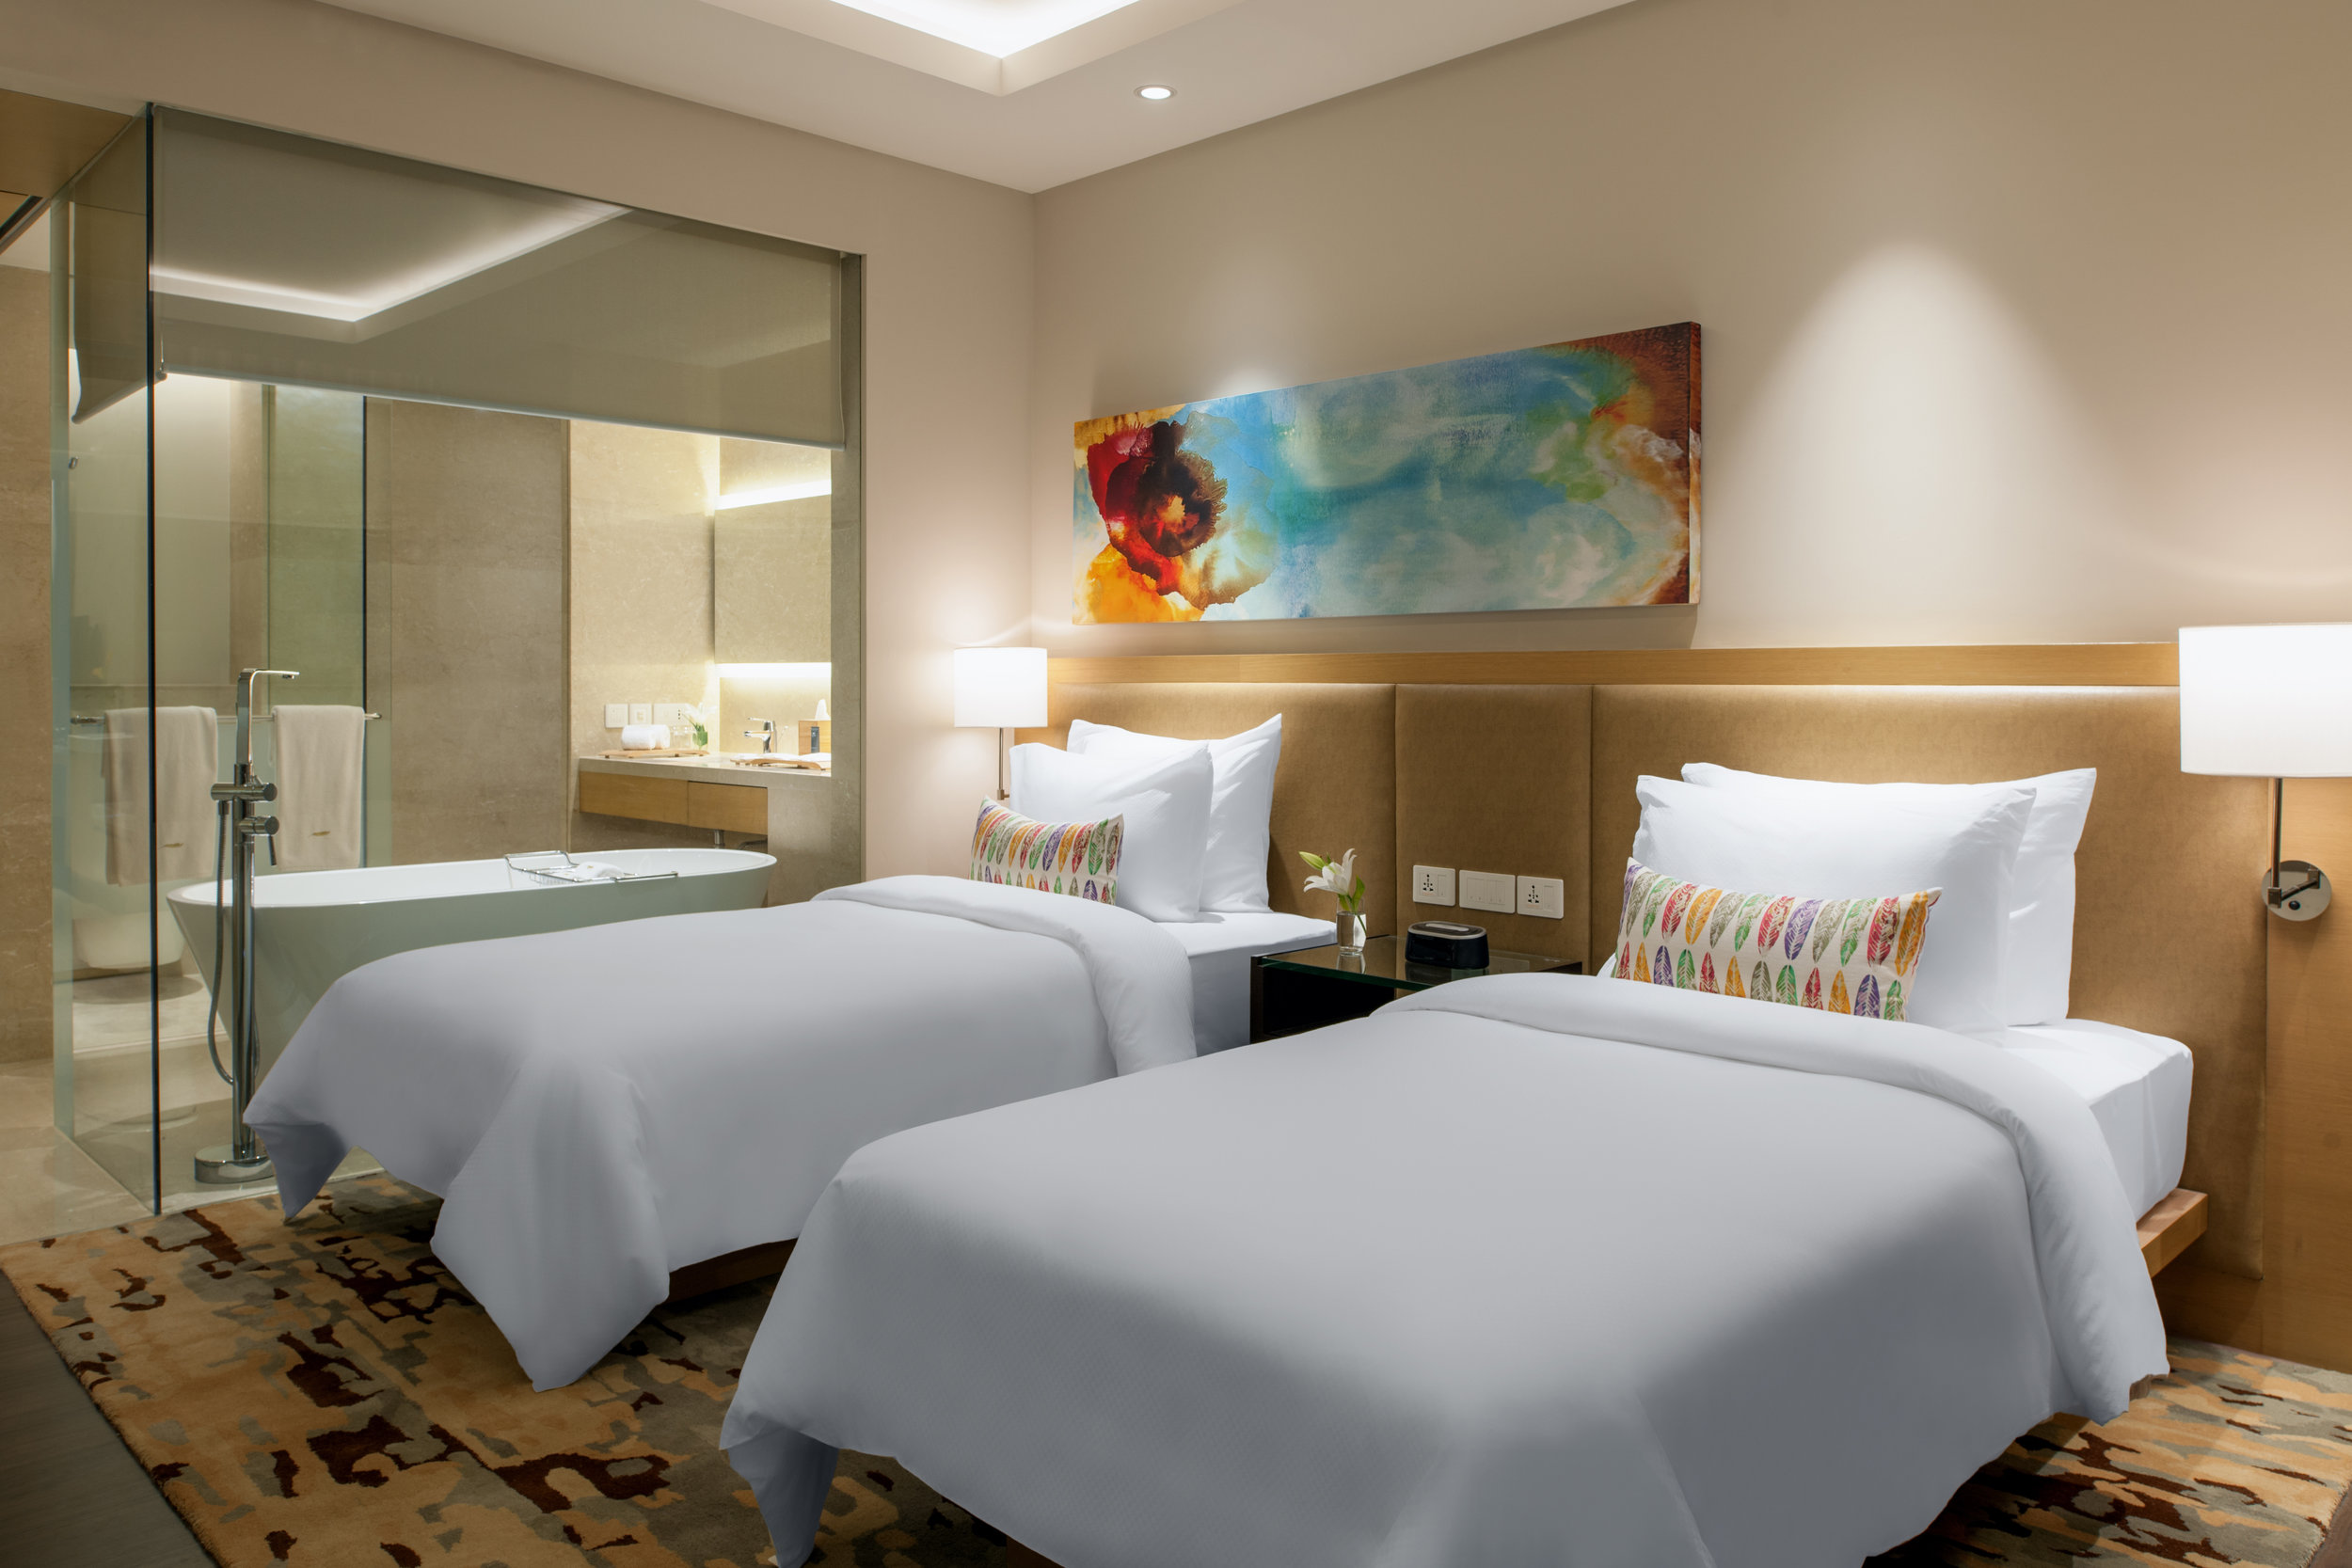 Cobico_Feathers Chennai_Executive Twin Room 2.jpg